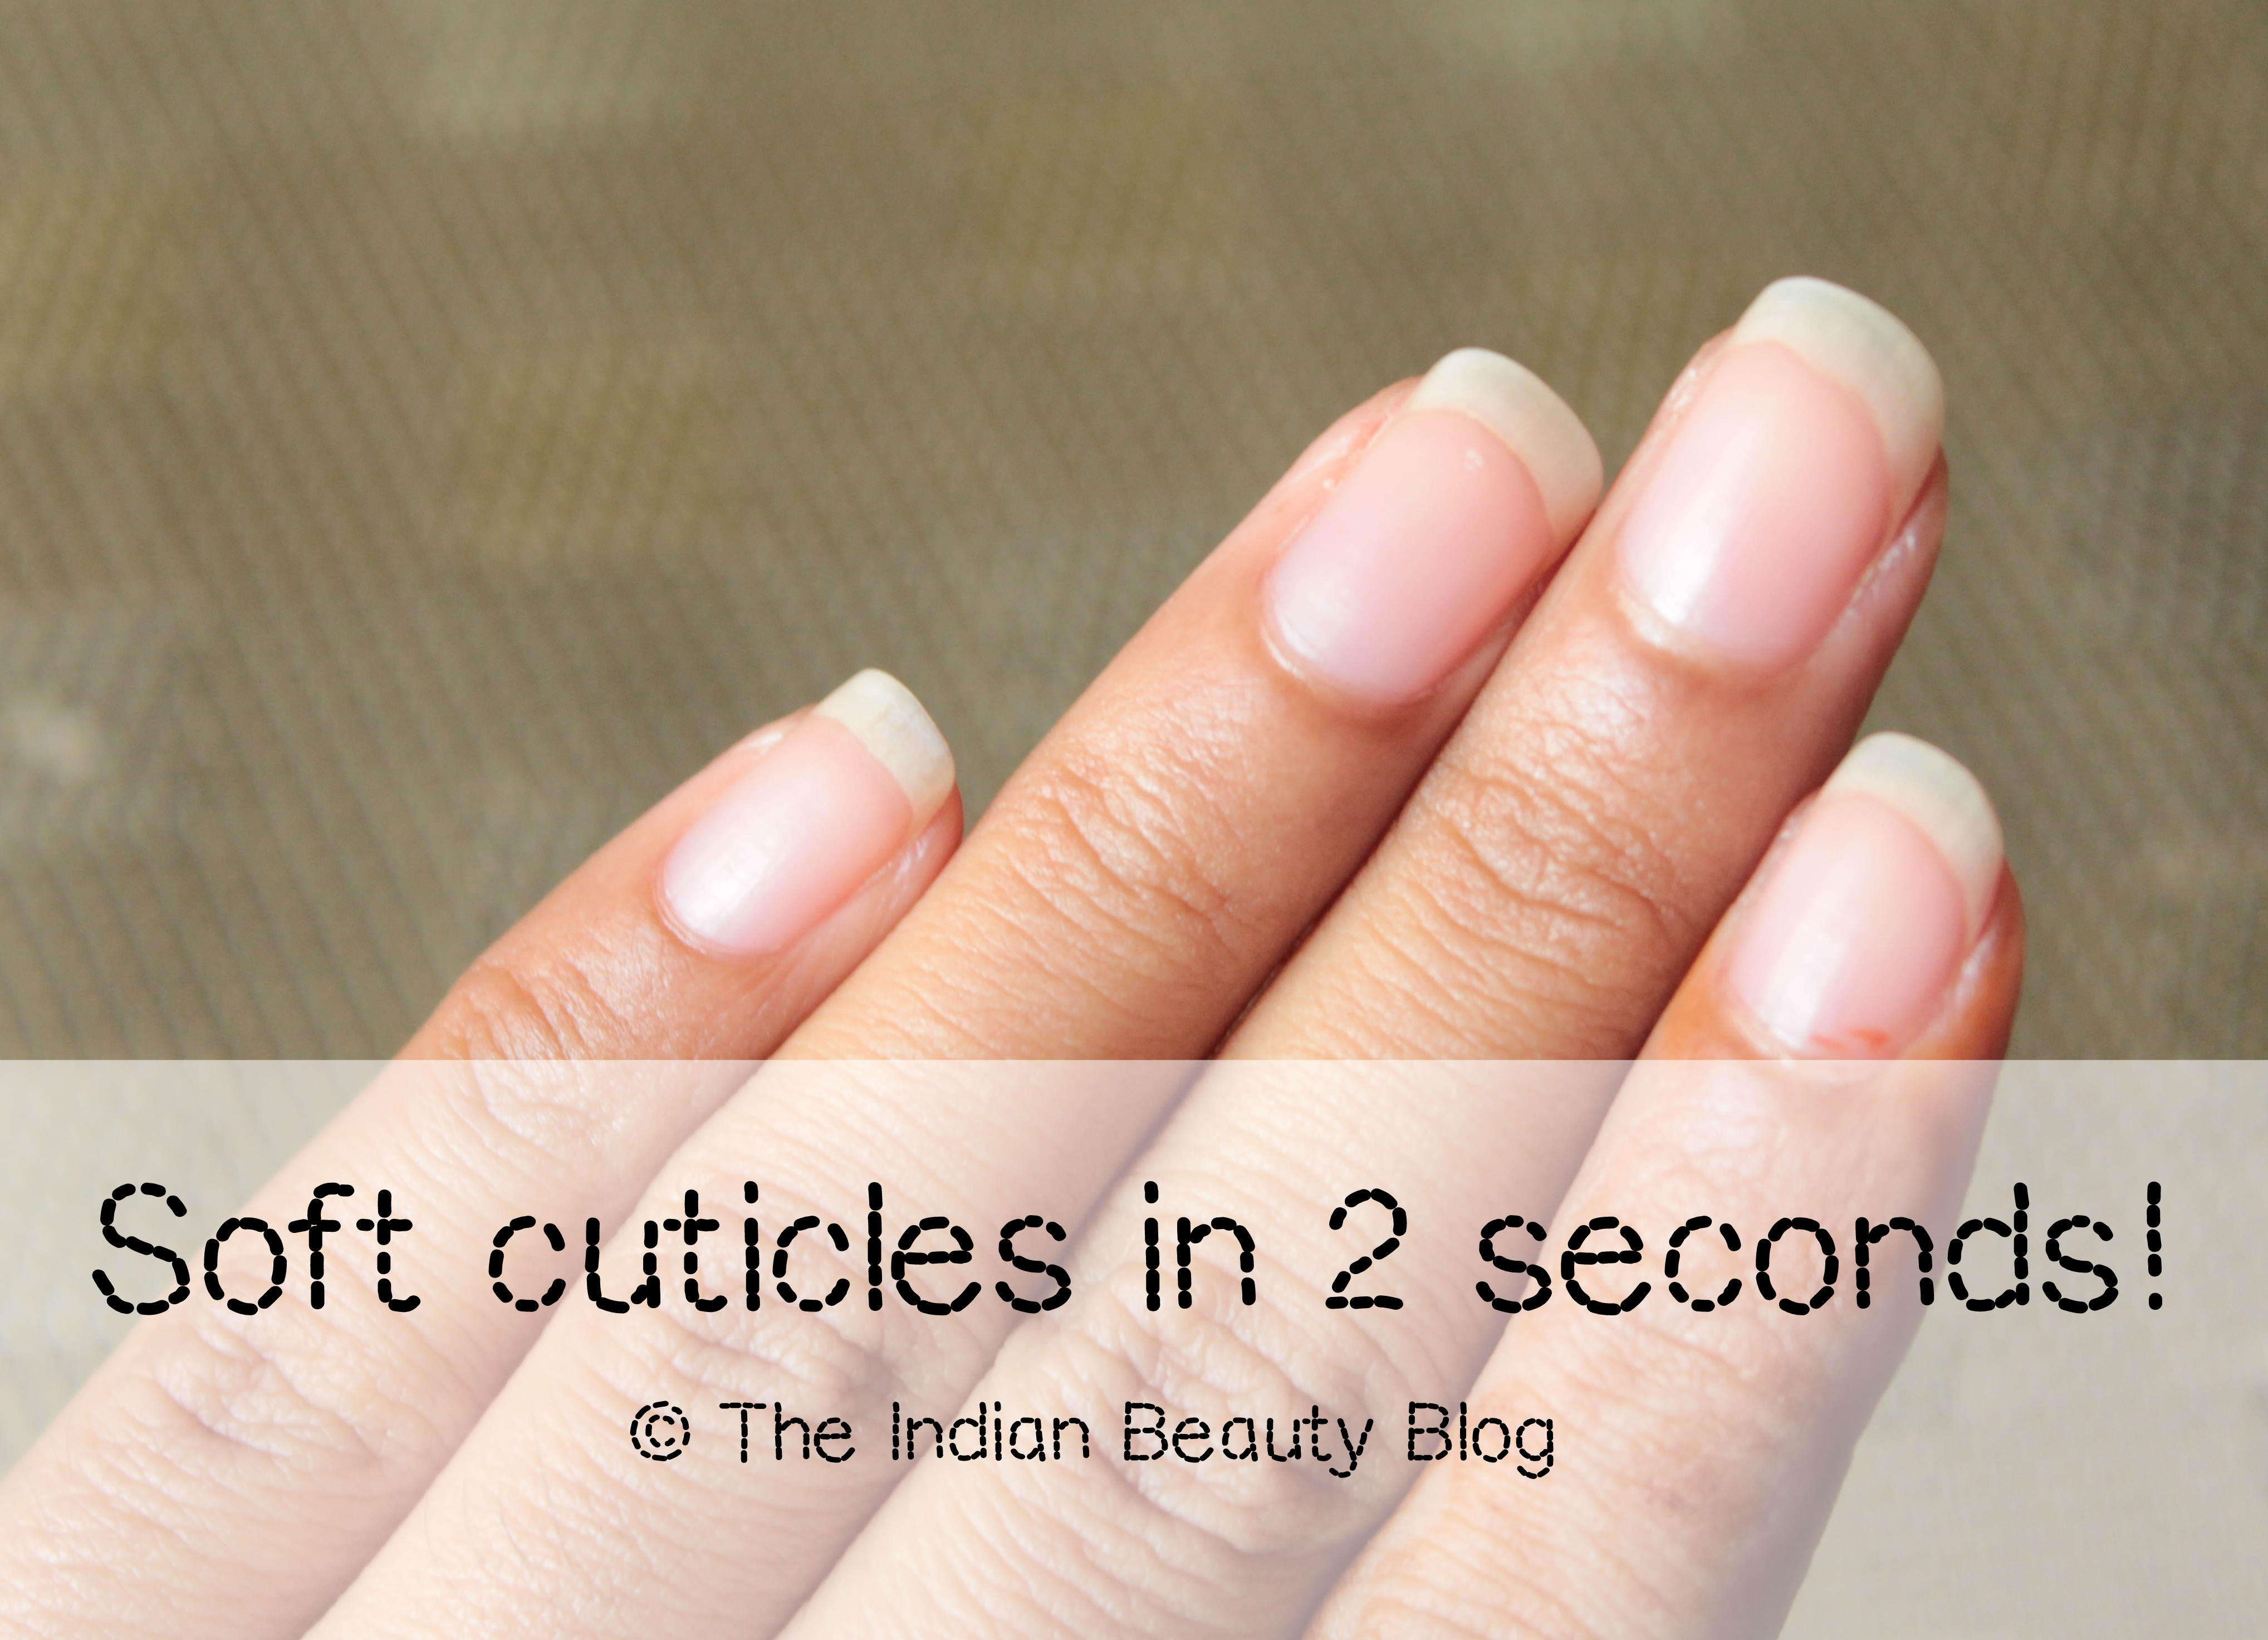 Soft cuticles in an instant |The Indian Beauty Blog